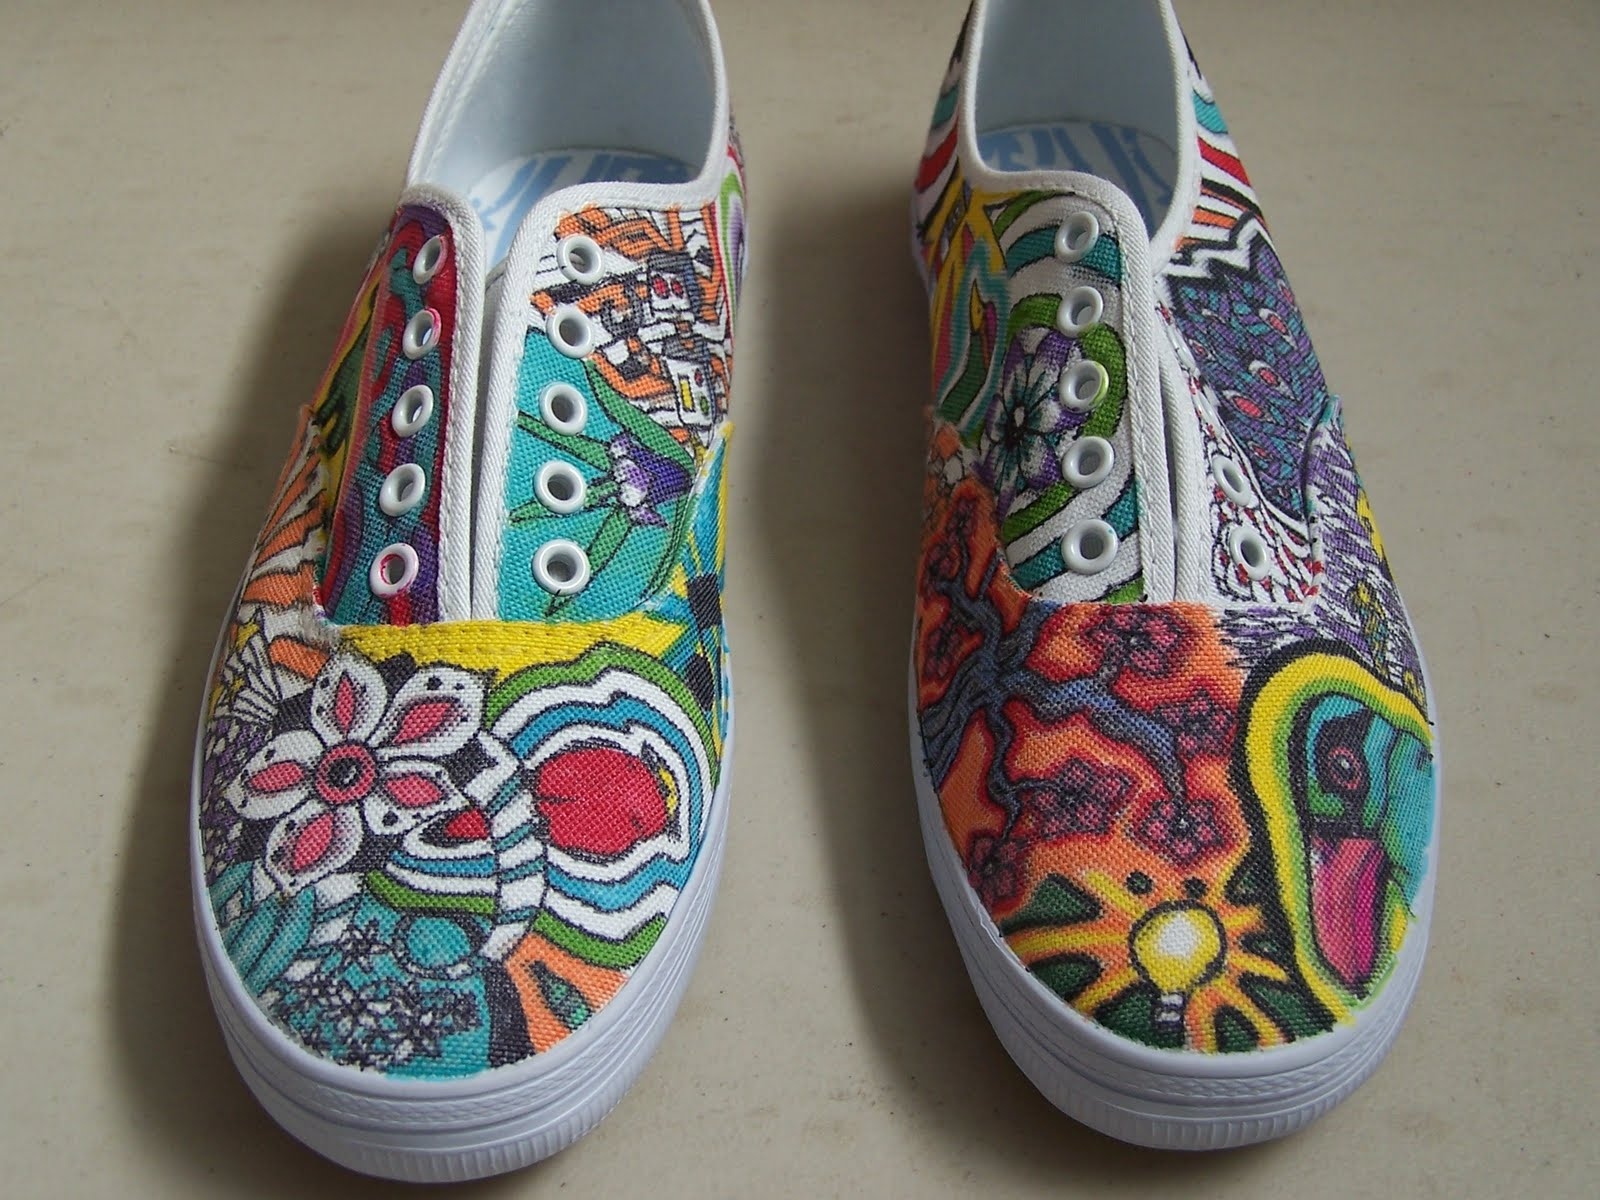 Austin b 39 s art shoe art for Shoe sculpture ideas